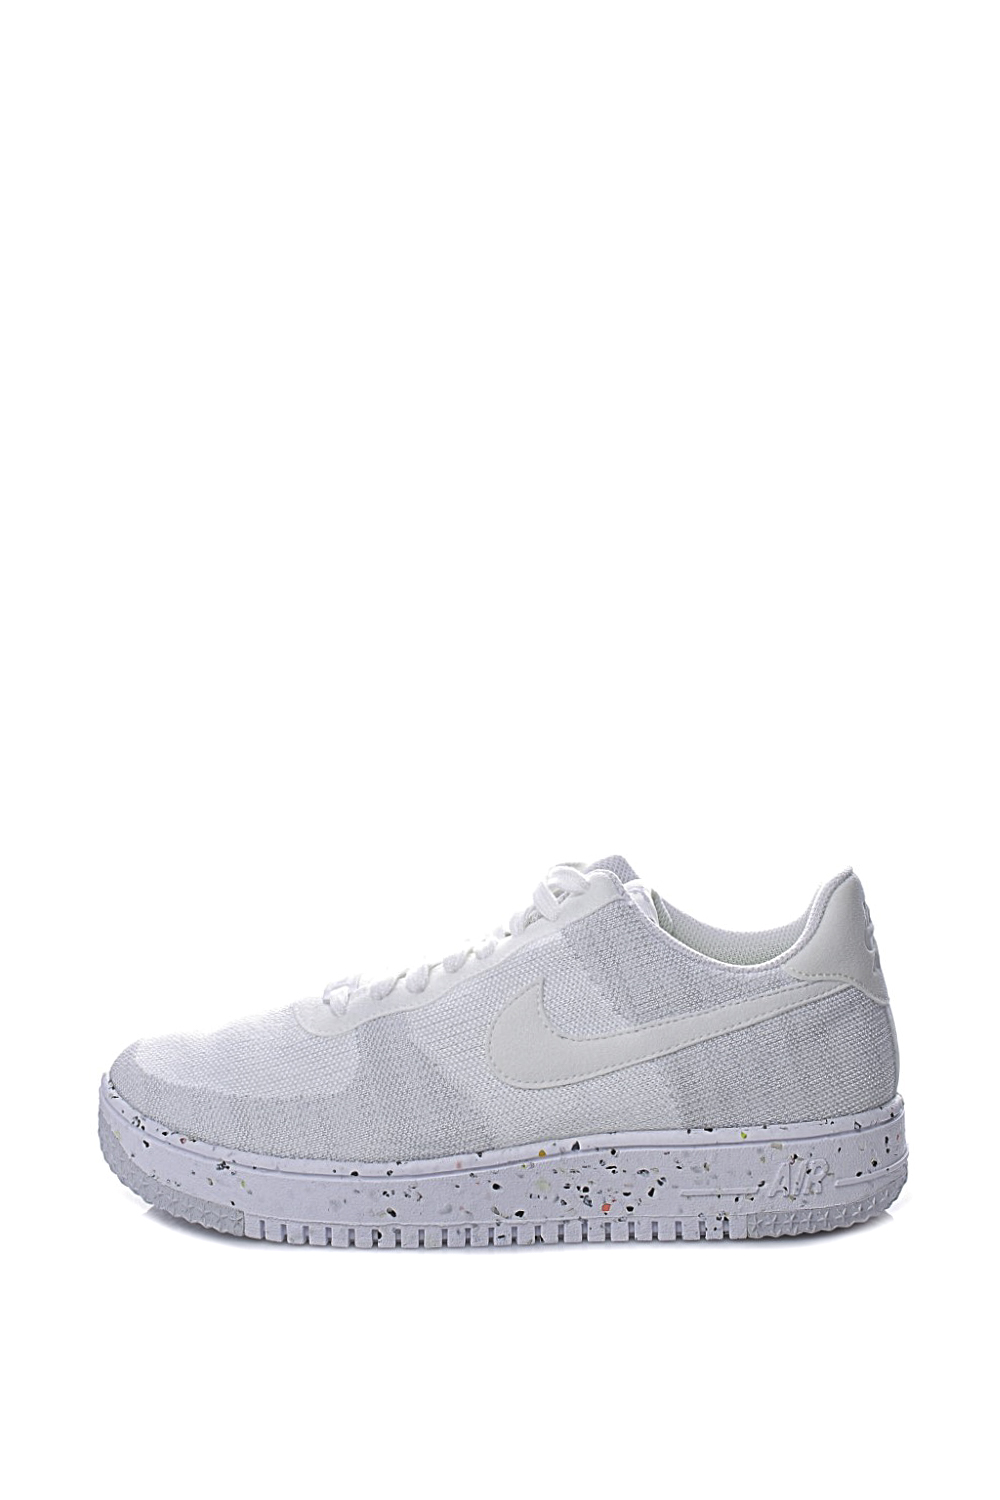 NIKE – Ανδρικά παπούτσια basketball NIKE AF1 CRATER FLYKNIT λευκά